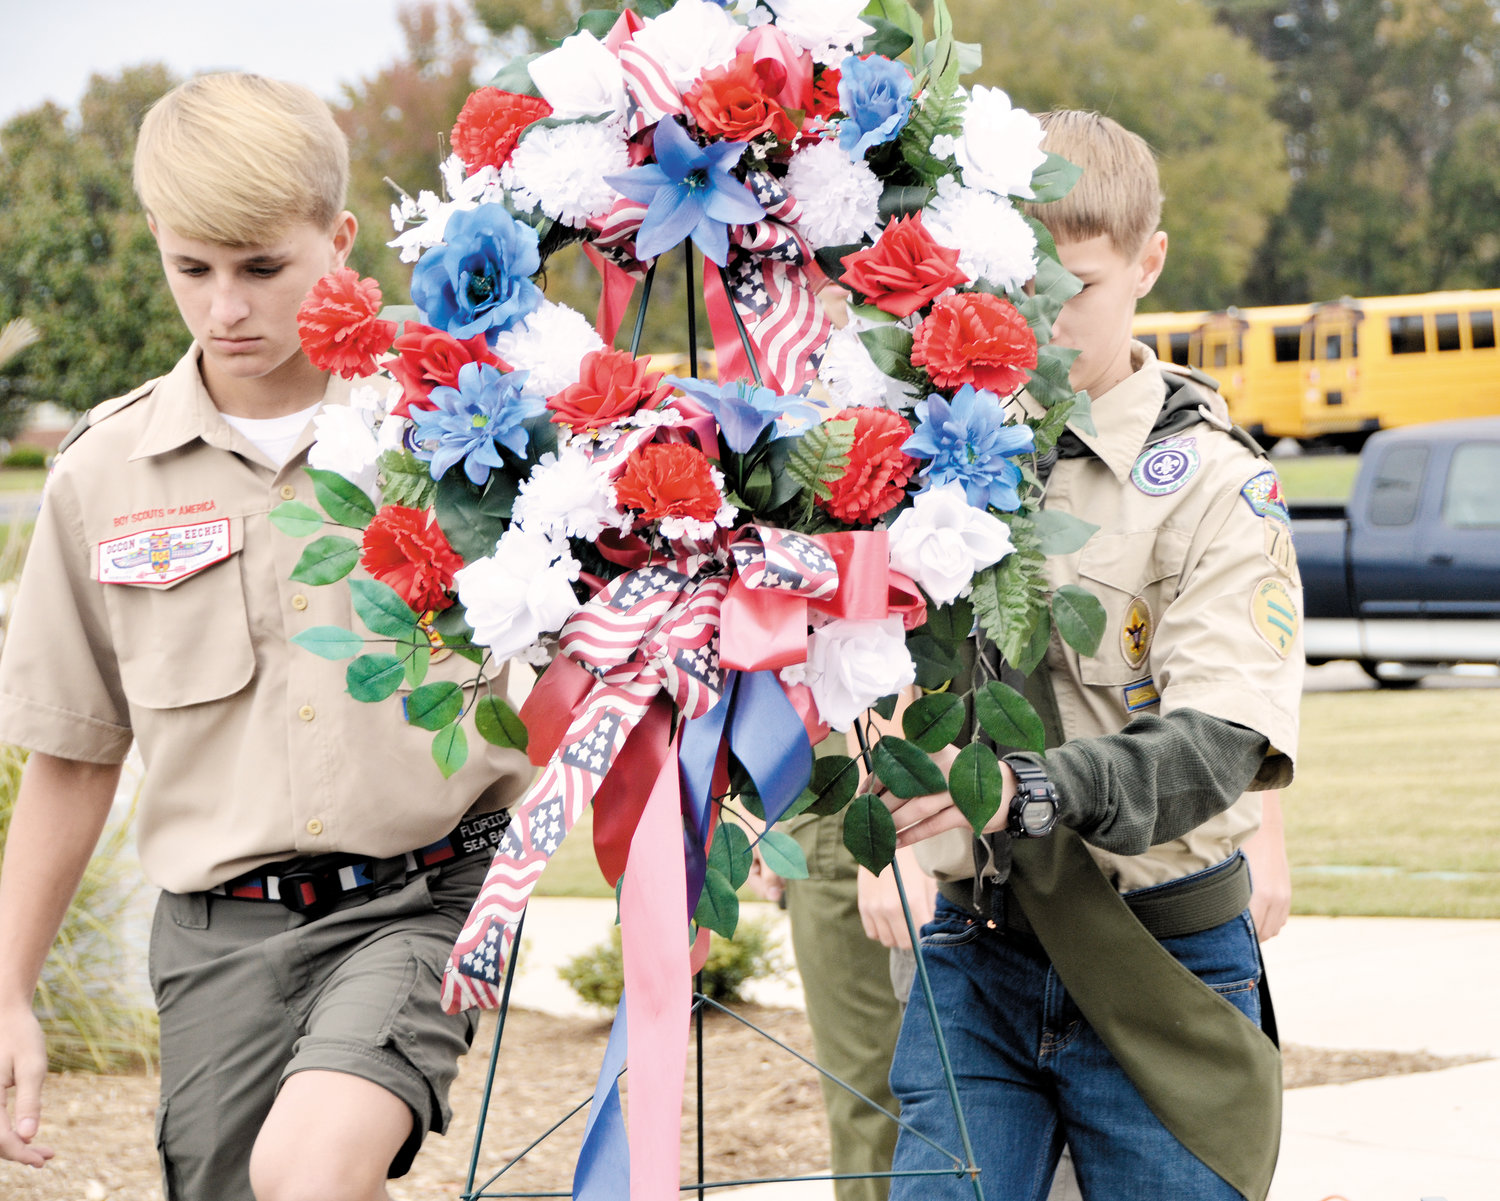 Members of Dunn Boy Scout Troop 711 laid the wreath last year during Dunn's Veterans Day remembrance which will be held once again this year on Sunday at Tyler Park. The Scouts participating last year were Garrett Warren, Logan Stroud, Gavin Harris, Carson Smith, Jackson Warren and Anderson Wood.